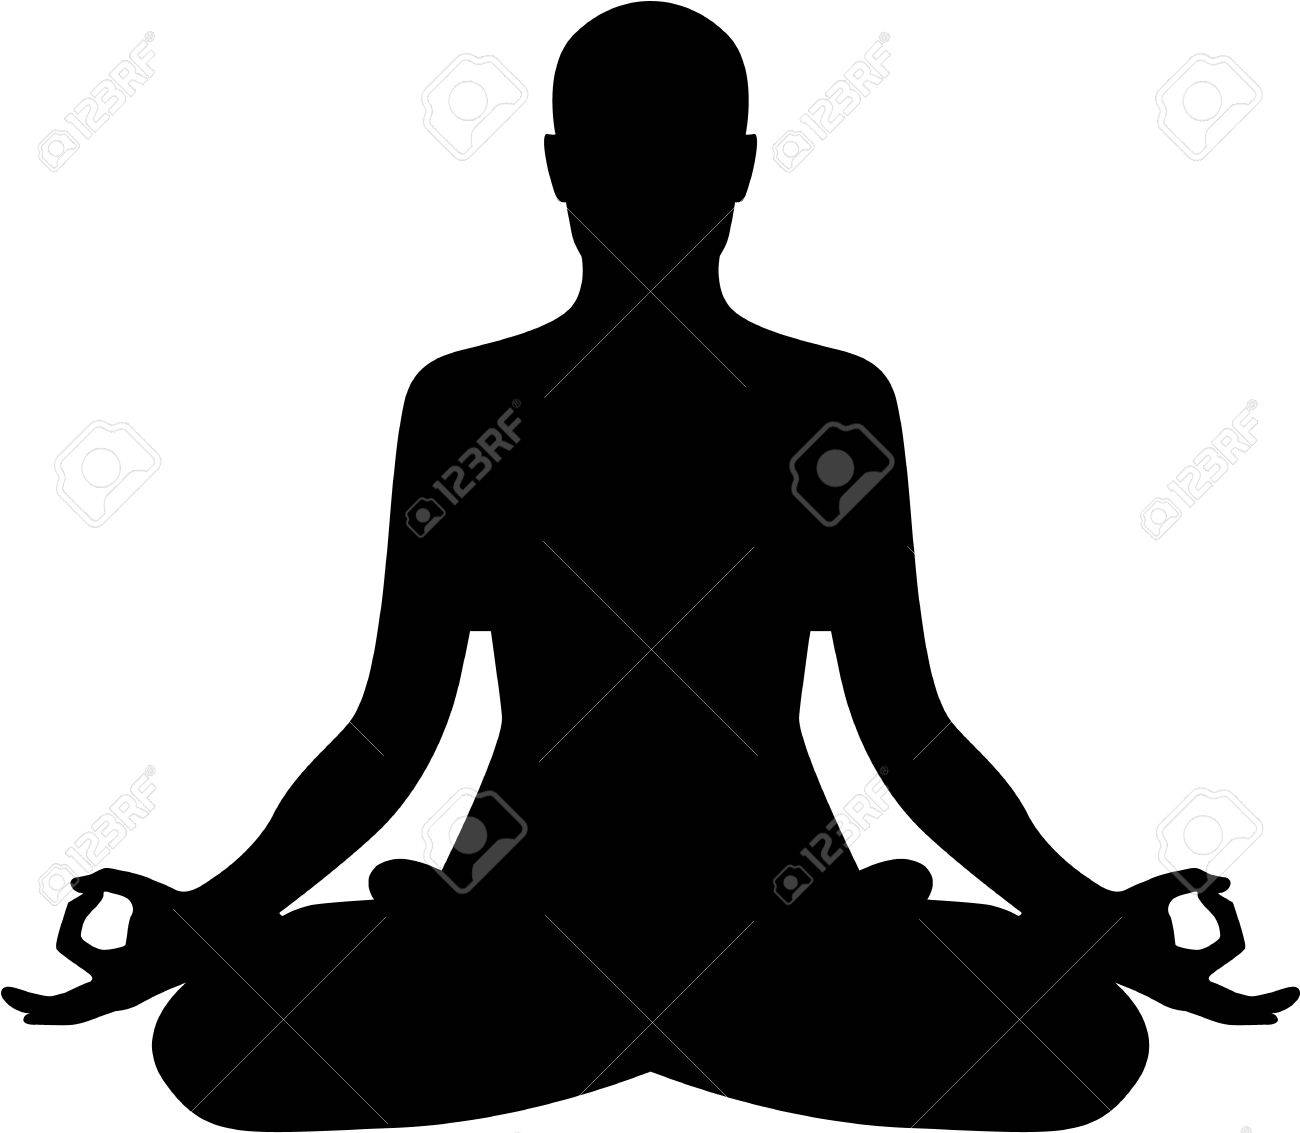 Meditation relaxation silhouette - 45479855